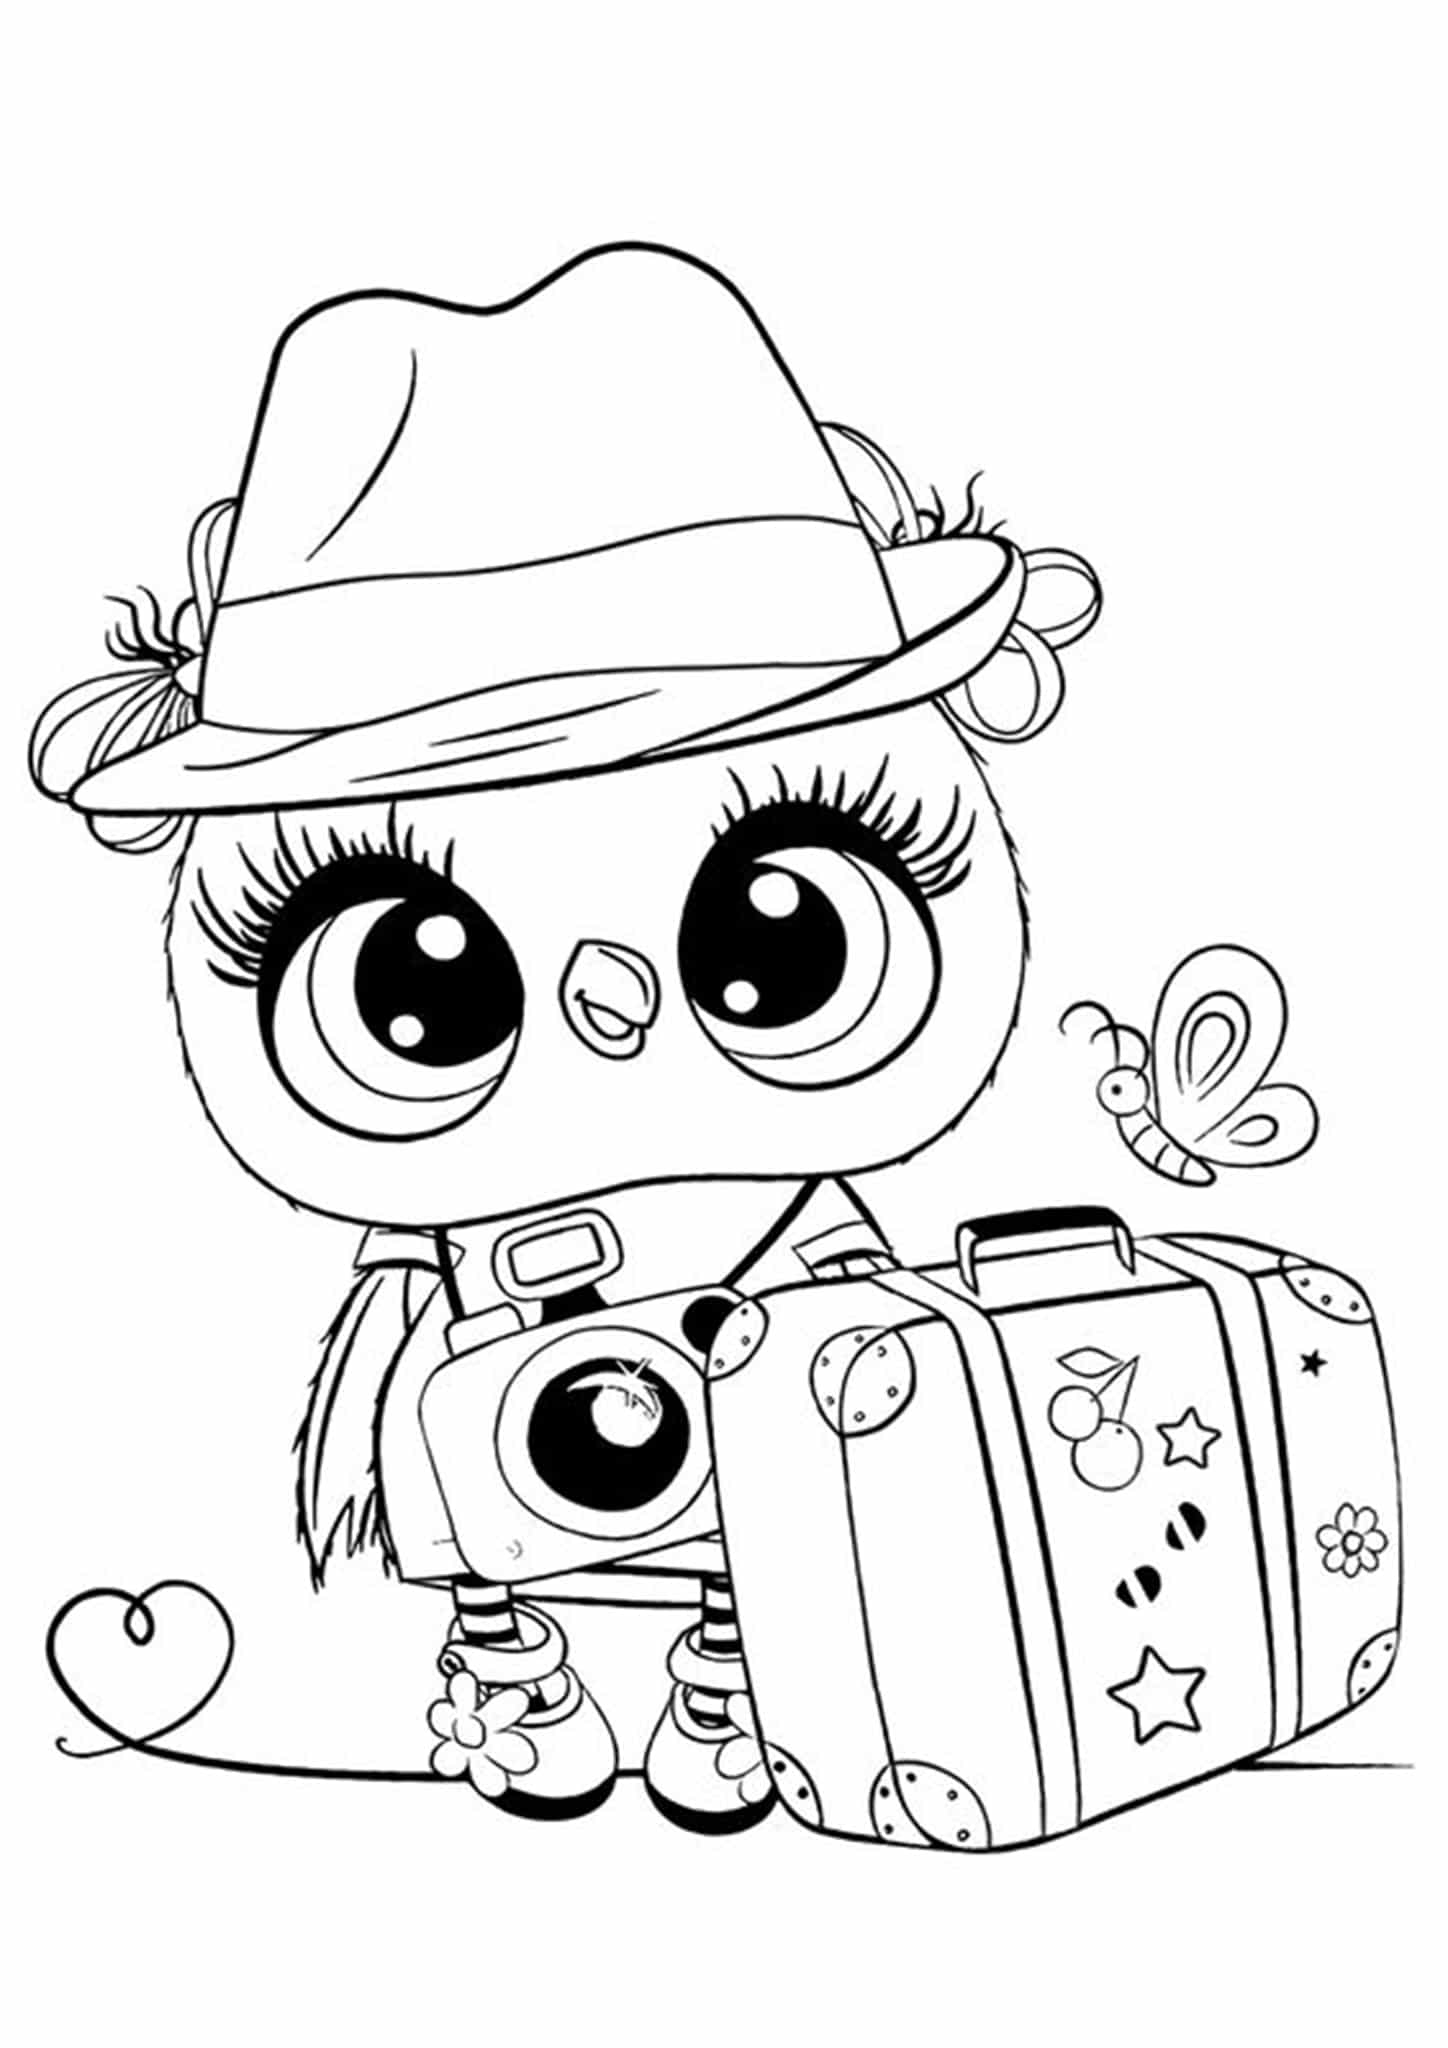 free printable coloring sheets large coloring pages to download and print for free printable coloring free sheets